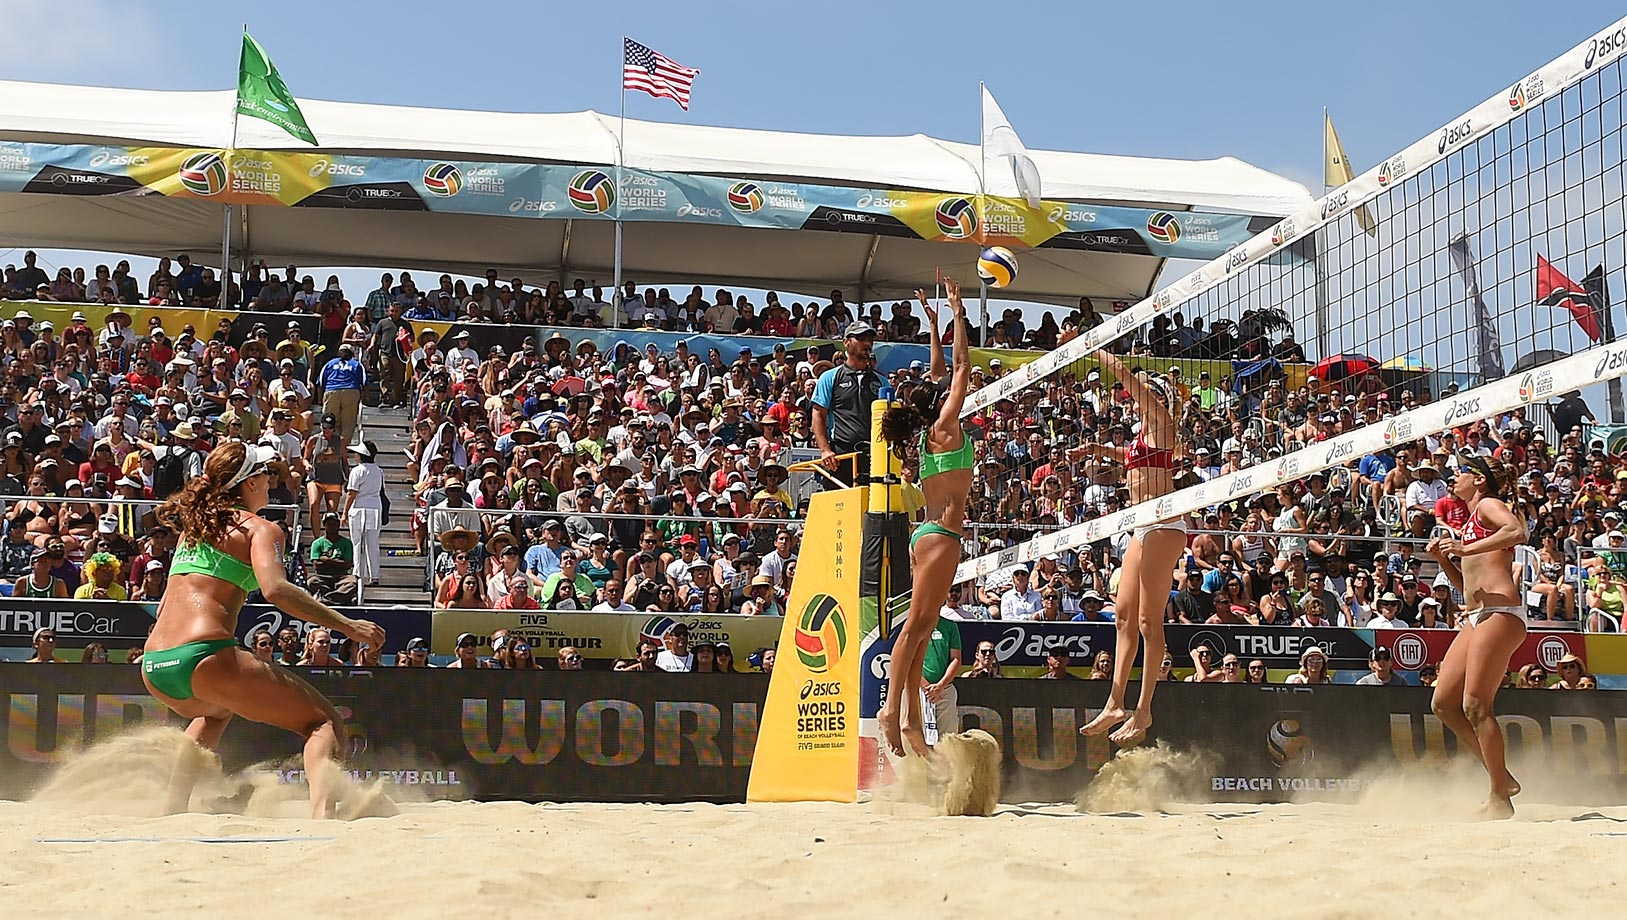 The women's final on Sunday. Kerri Walsh-Jennings played despite a severely injured right shoulder. She and partner April Ross took silver. Kerri hit left-handed and served underhand.